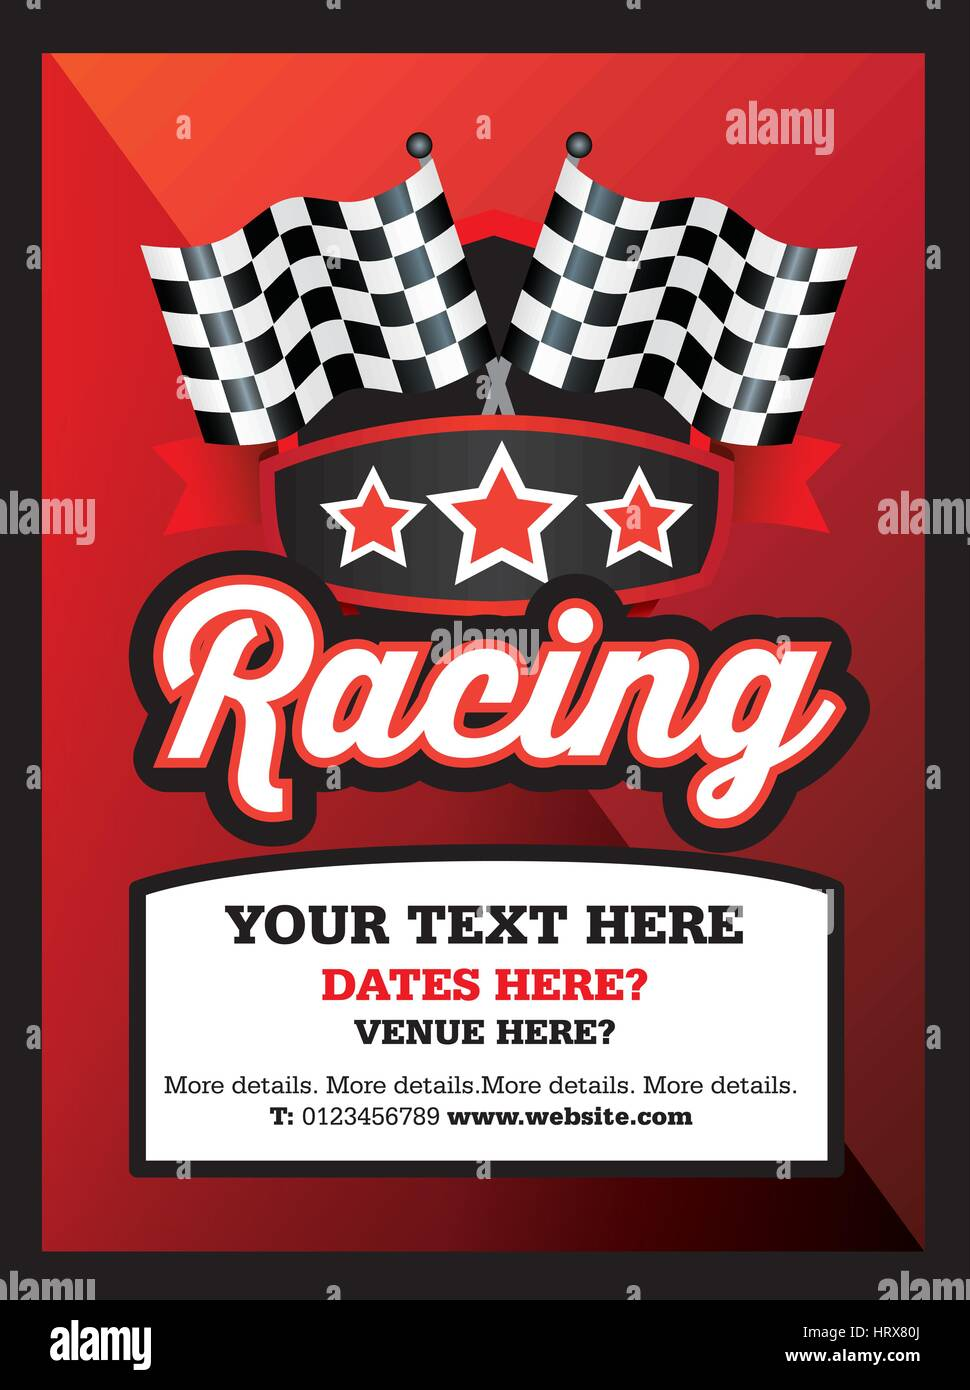 poster ad advertisement marketing or promotion flyer for a motor sport racing club or event